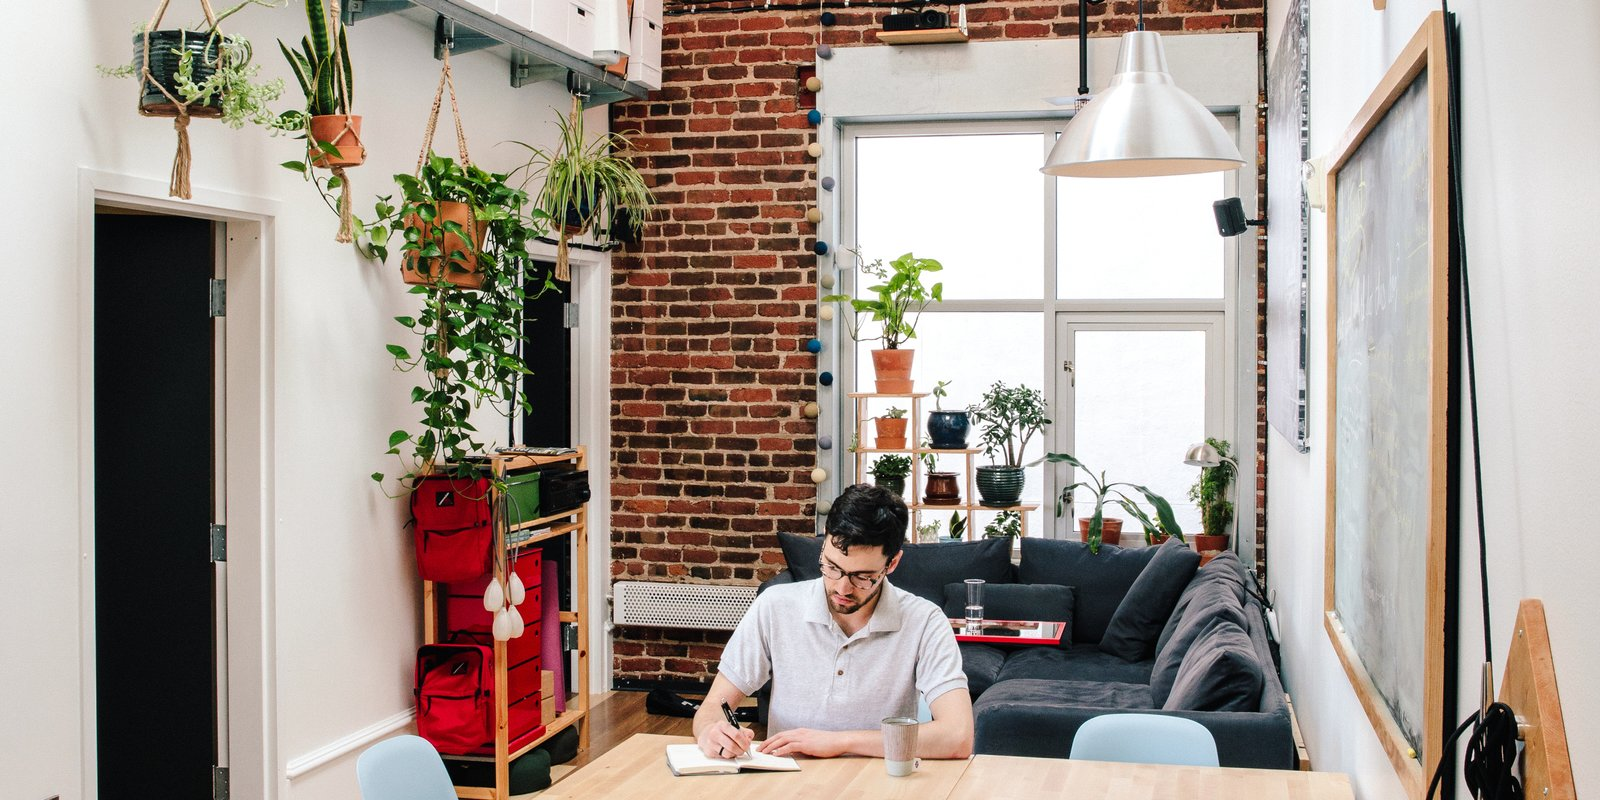 A software engineer outfits his tiny apartment with flexible design ideas.  Max's modestly scaled loft, for which he designed and made many of the furnishings, sits on the top floor of a 1908 building that went condo in 2006, offering homeowners a no-frills berth in the heart of San Francisco's downtown. Just outside the front door awaits a dizzying array of shops, theaters, and corporate offices, including Twitter's, as well as a robust population of street denizens. Tagged: Living Room, Ceiling Lighting, and Sofa.  Max's Apartment by Dwell from Devising Clever Solutions For a Small San Francisco Loft